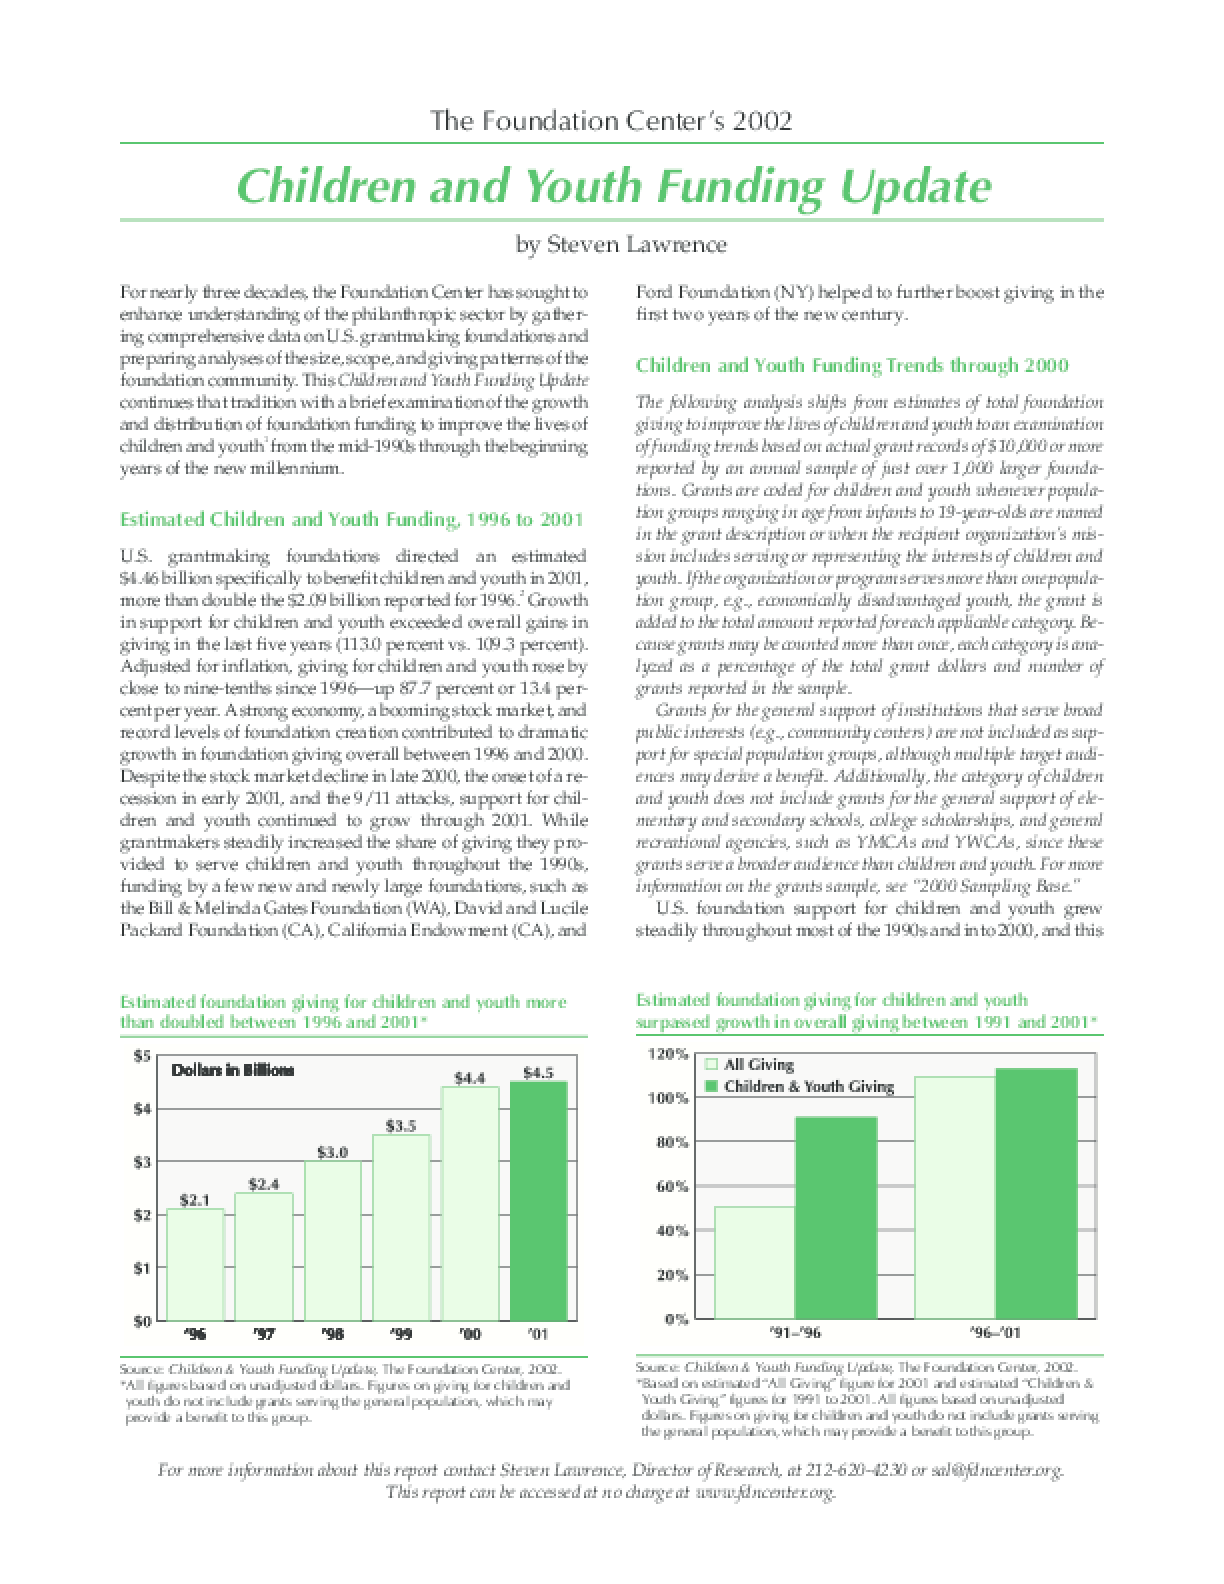 Children and Youth Funding Update